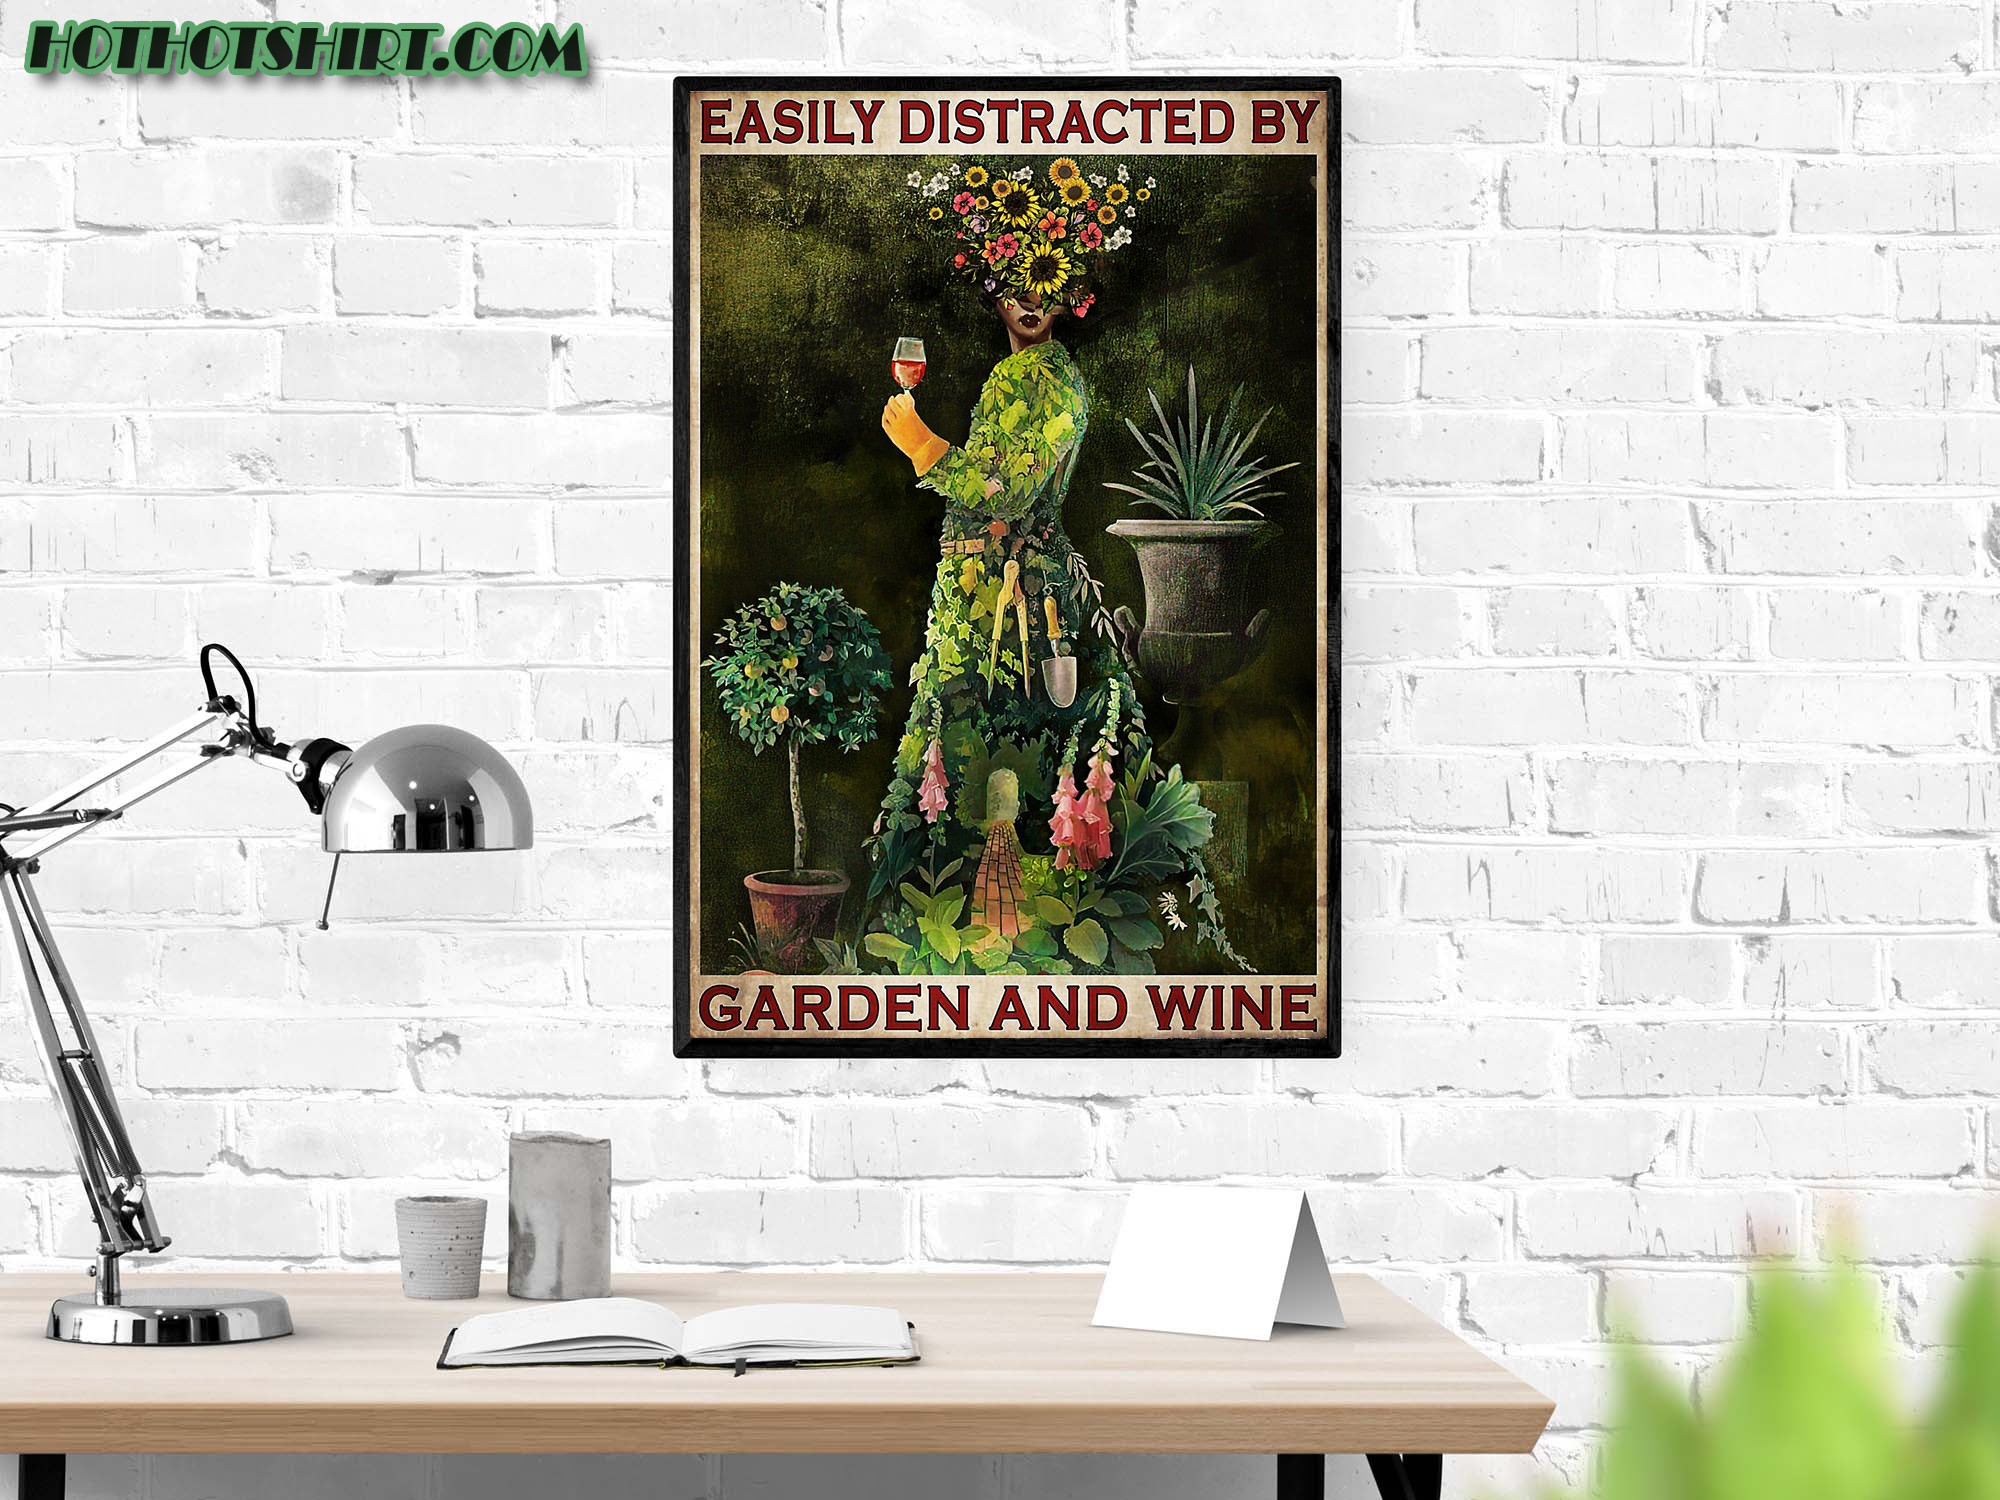 Easily distracted by garden and wine poster 1